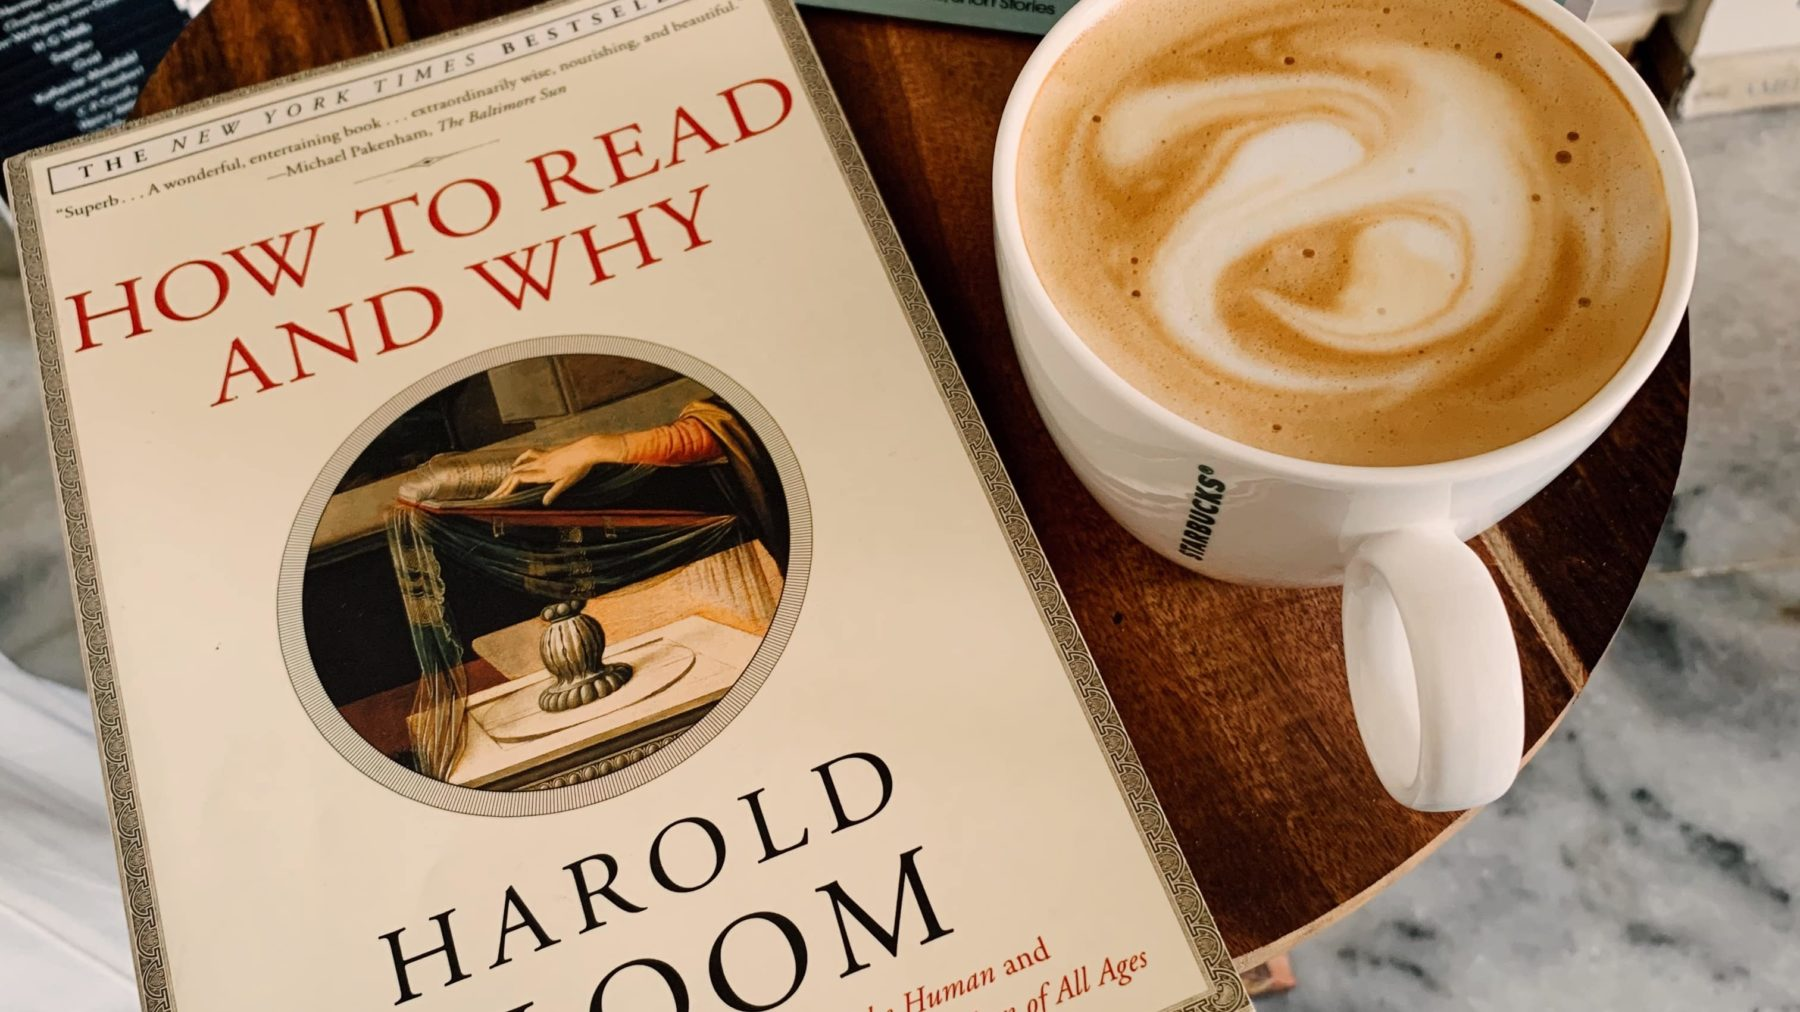 Harold Bloom's How To Read And Why